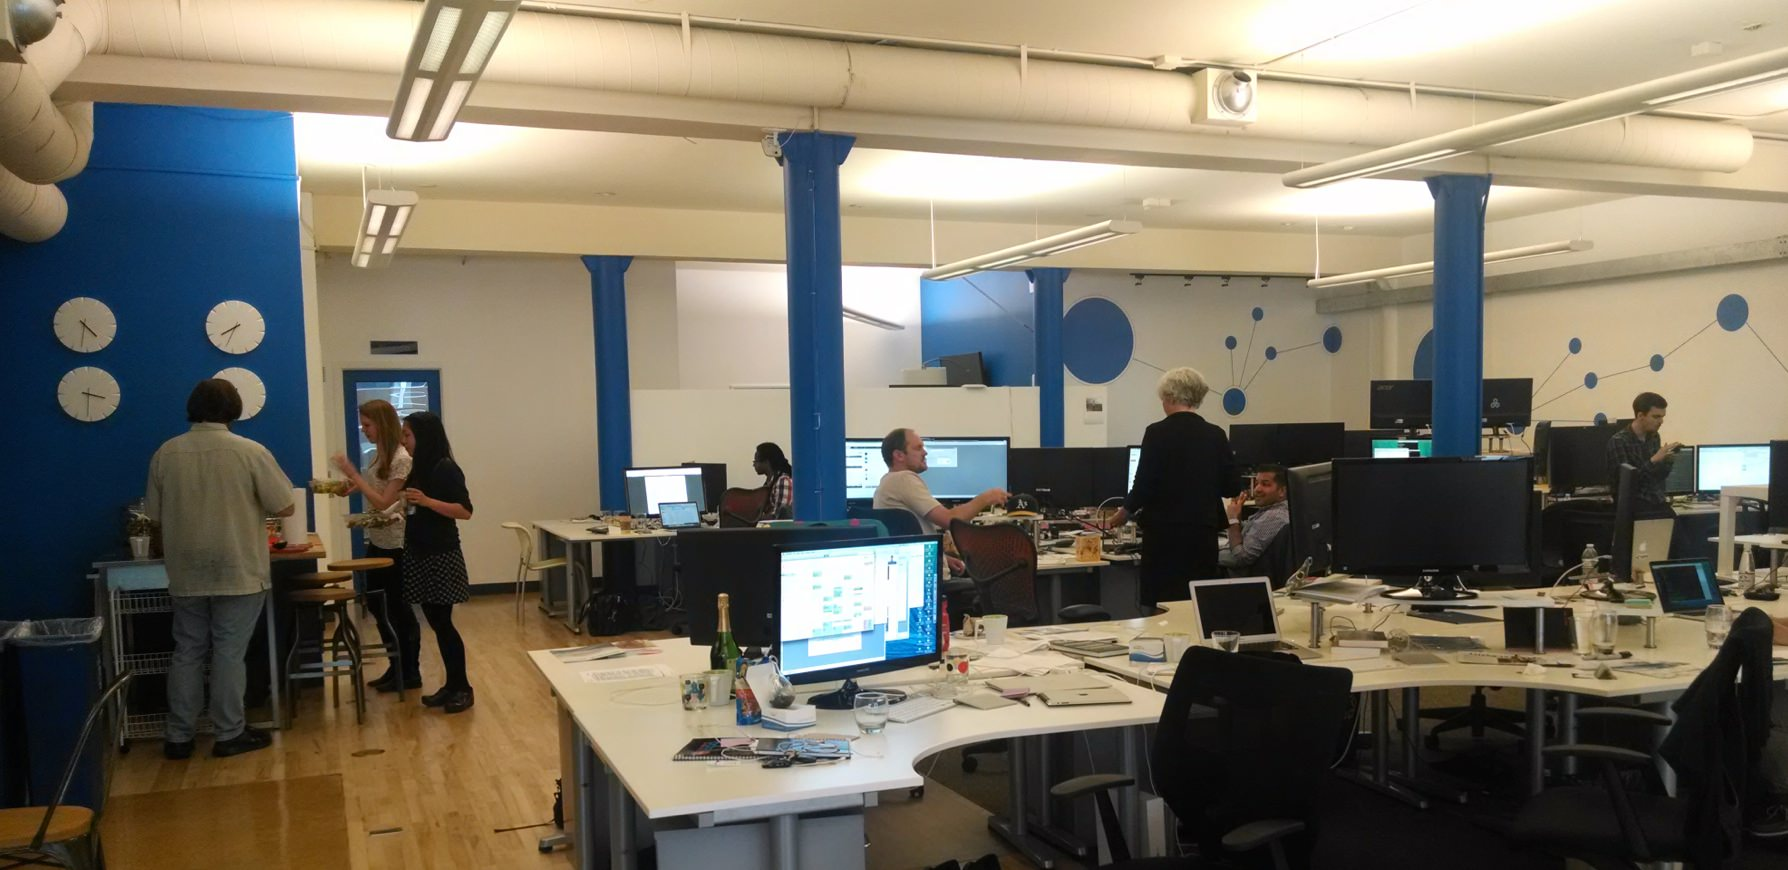 The Ripple Labs office space in San Francisco.